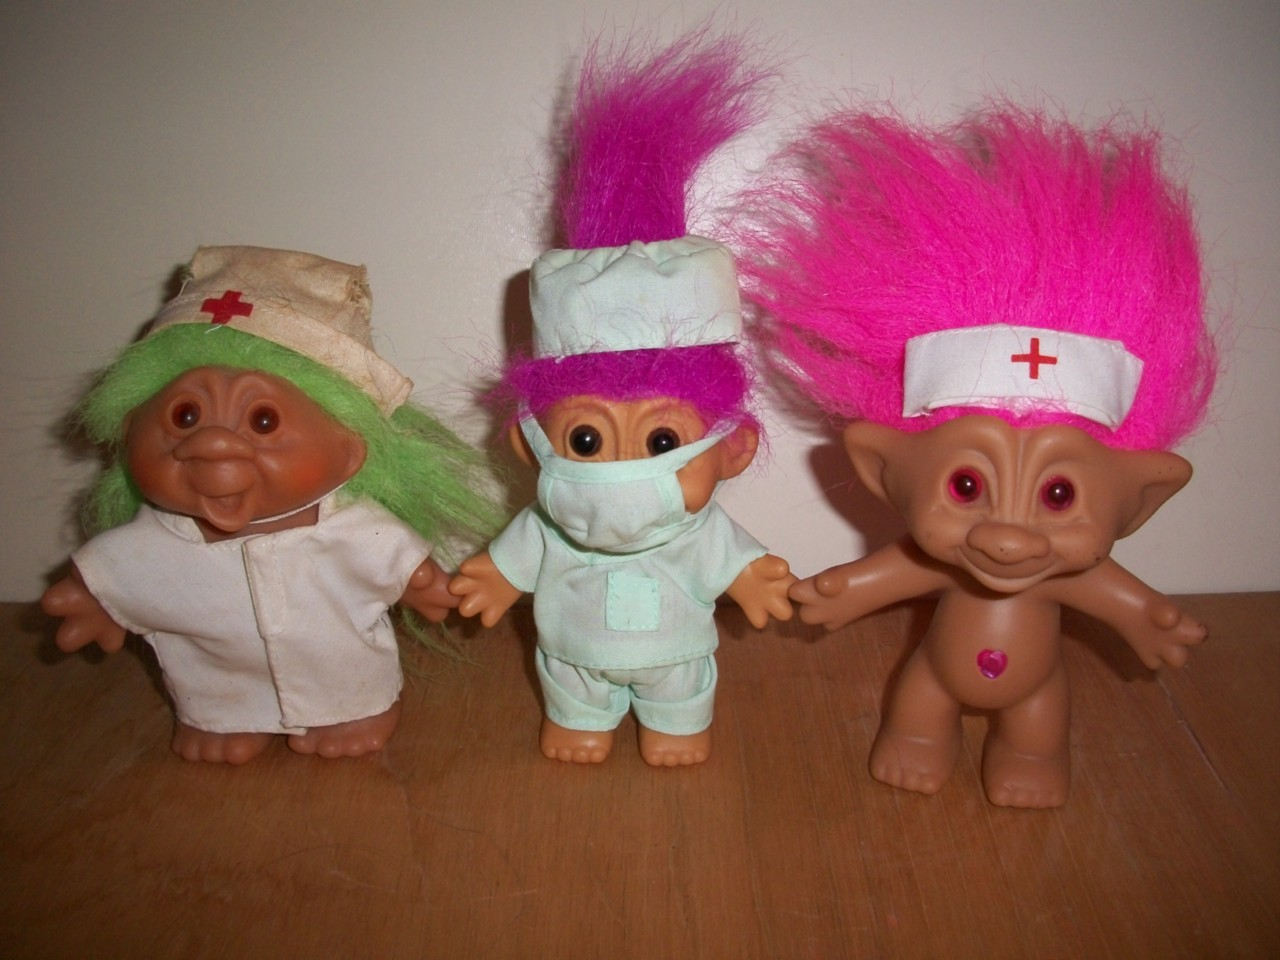 VINTAGE TROLL 3 RUSS DAM ACE DOCTOR NURSES HOSPITAL TREASURE PICS IN DISCRIPTION | eBay & VINTAGE TROLL 3 RUSS DAM ACE DOCTOR NURSES HOSPITAL TREASURE PICS IN ...